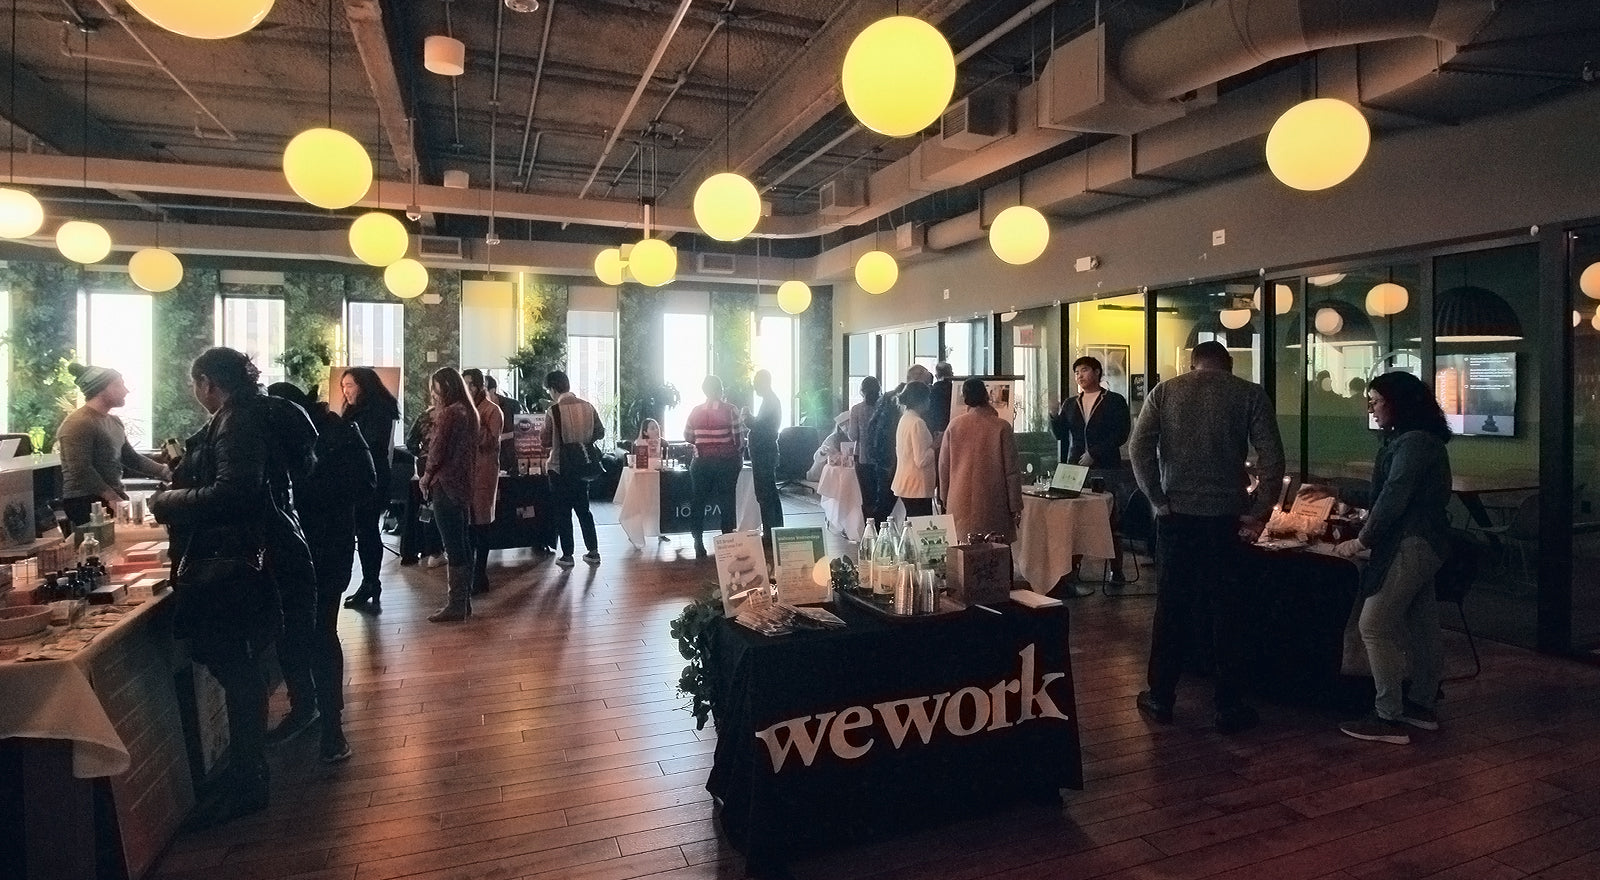 WeWork 85 Broad st. Wellness Fair January 15th, 2020 - 12-3pm on 27th Floor Commons